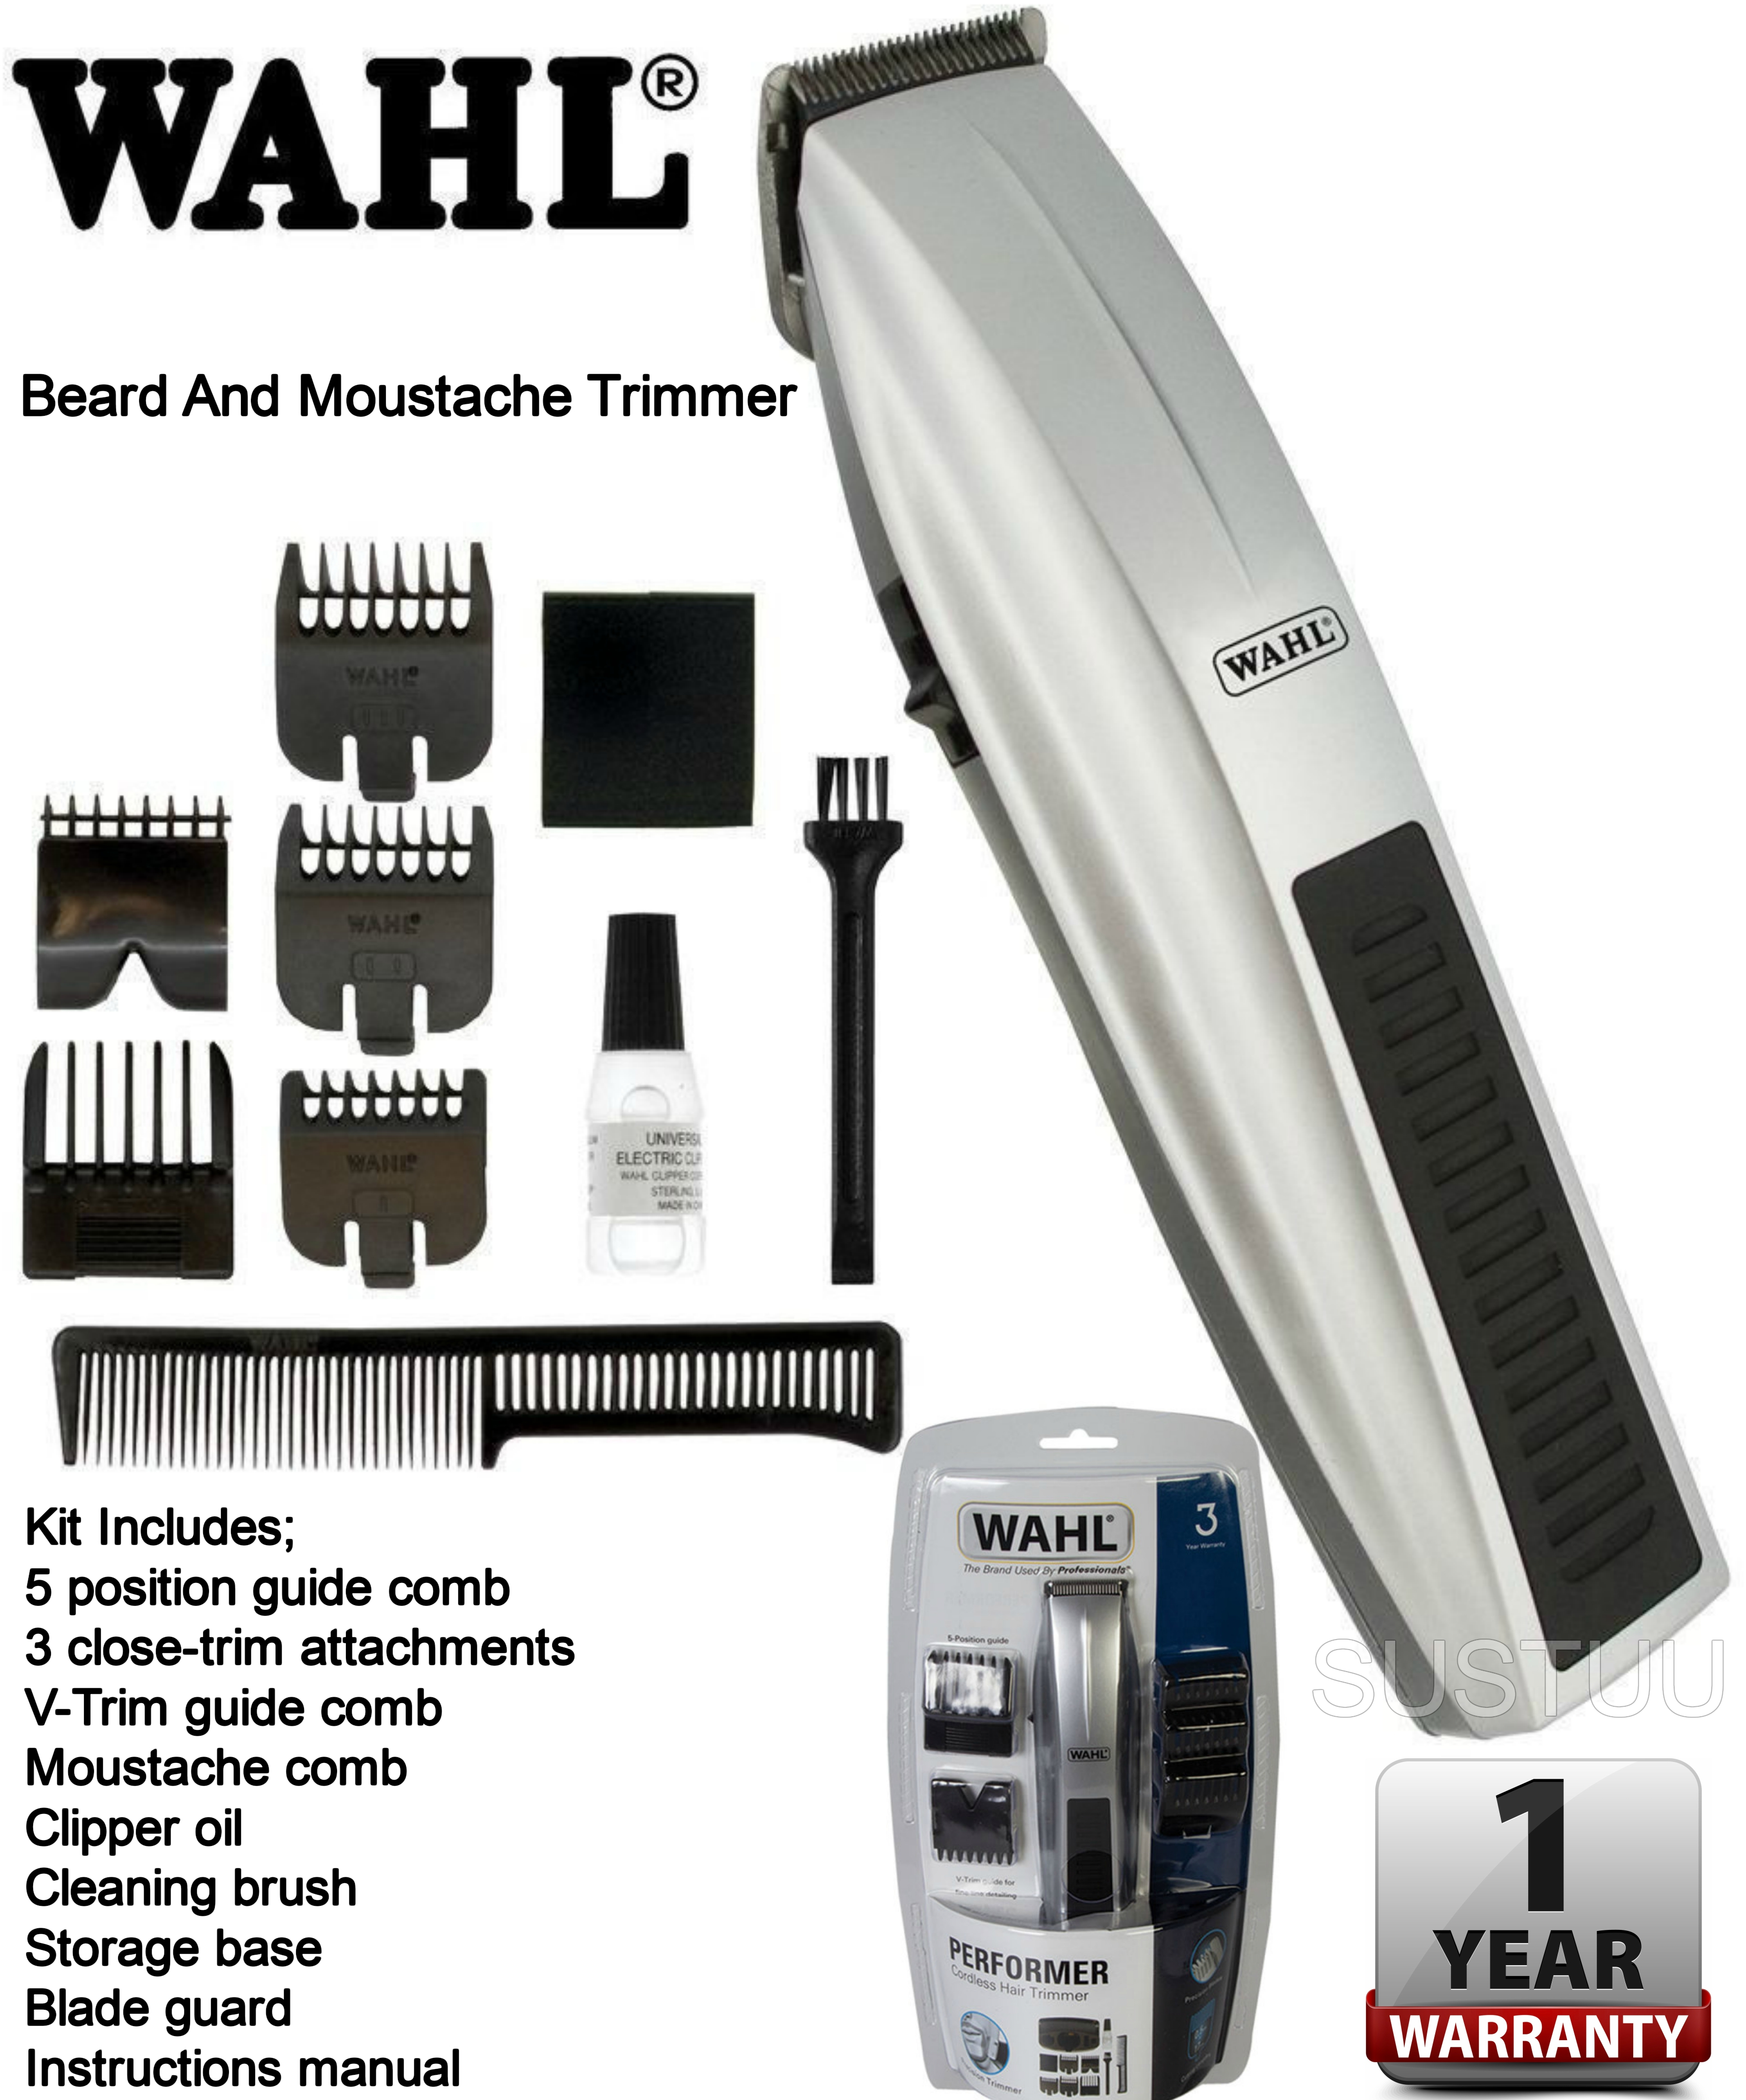 wahl 5537 217 performer cordless essentials grooming beard moustache trimmer. Black Bedroom Furniture Sets. Home Design Ideas